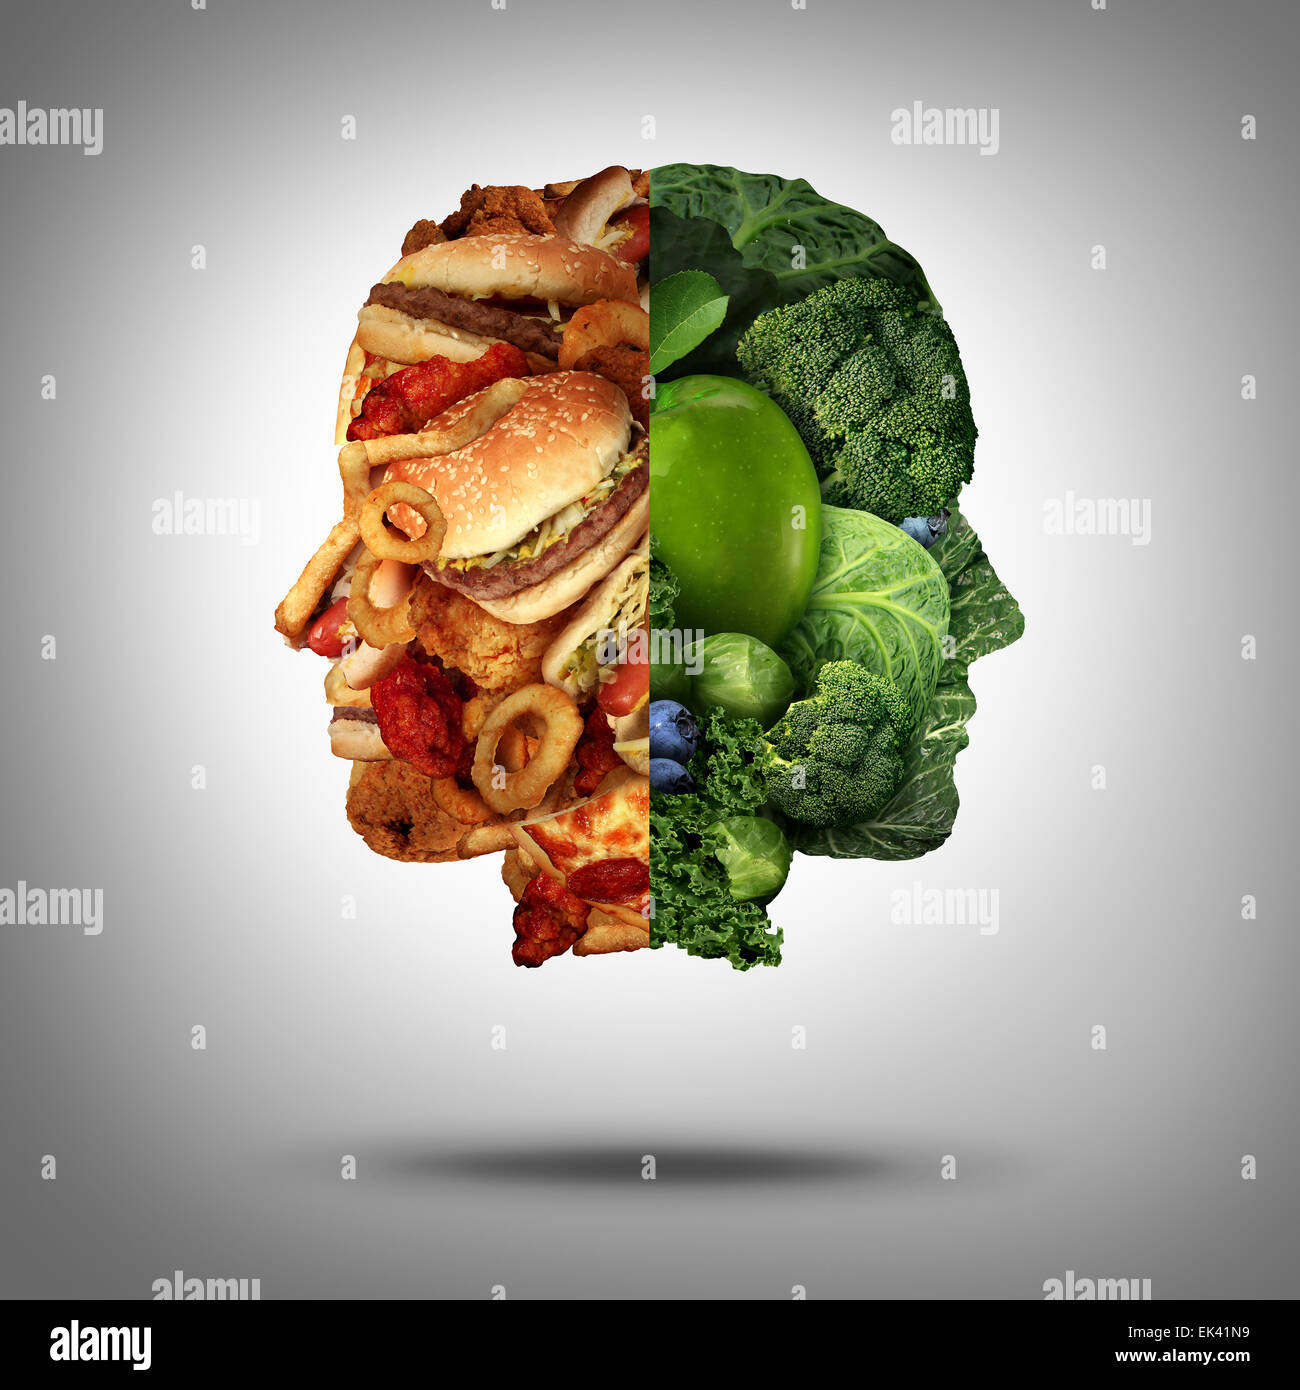 Food concept and diet decision symbol or nutrition choice dilemma between healthy good fresh fruit and vegetables - Stock Image